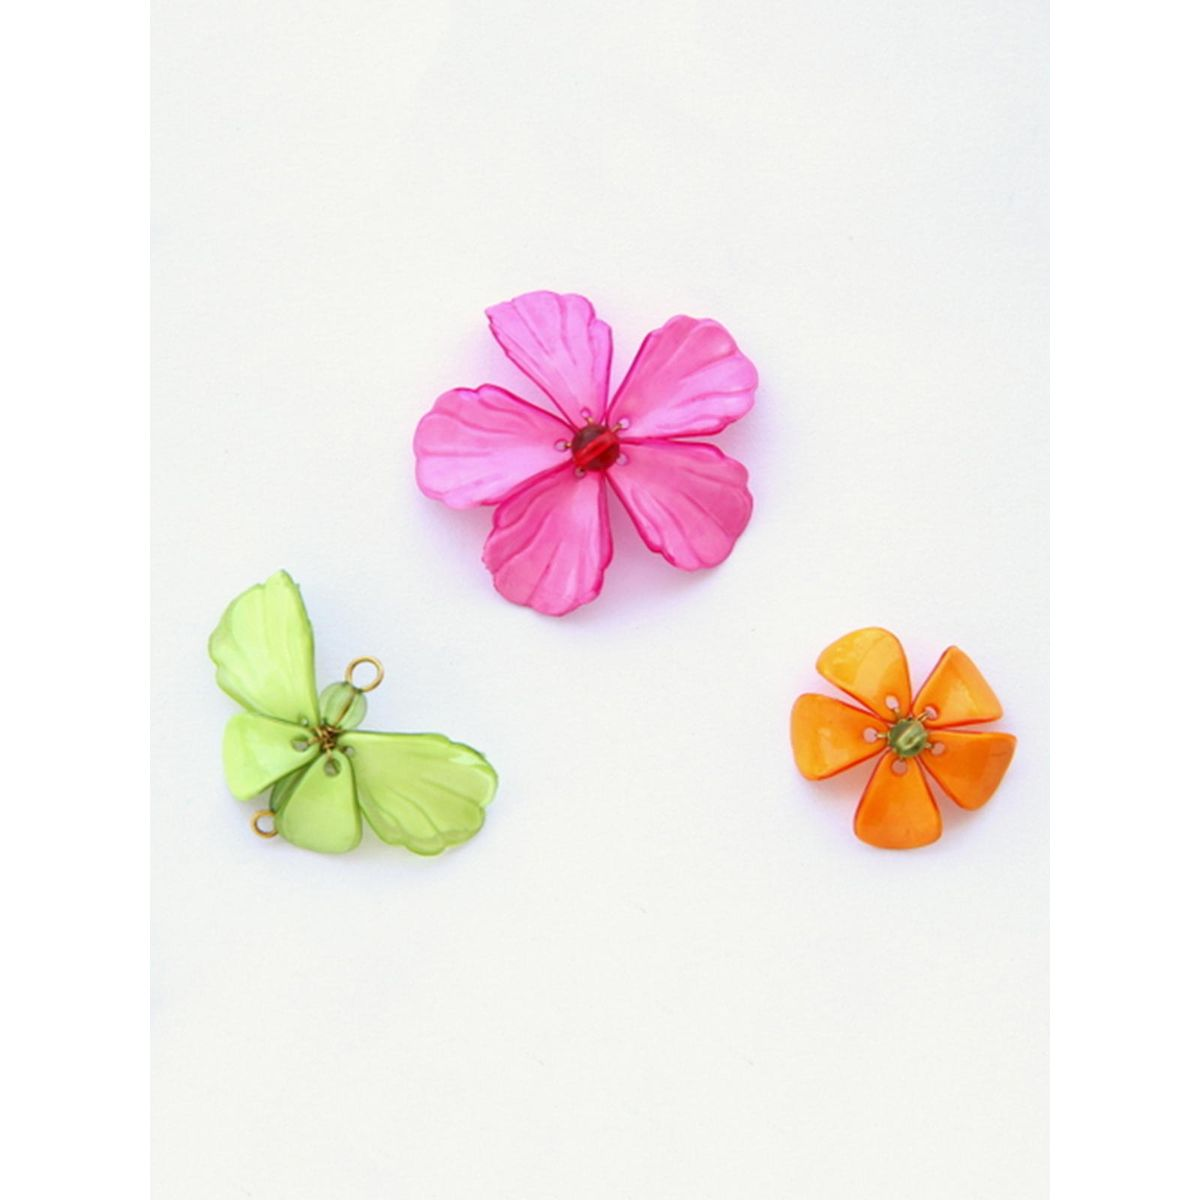 Kanhai Spring Candy Quirky Fridge Magnets